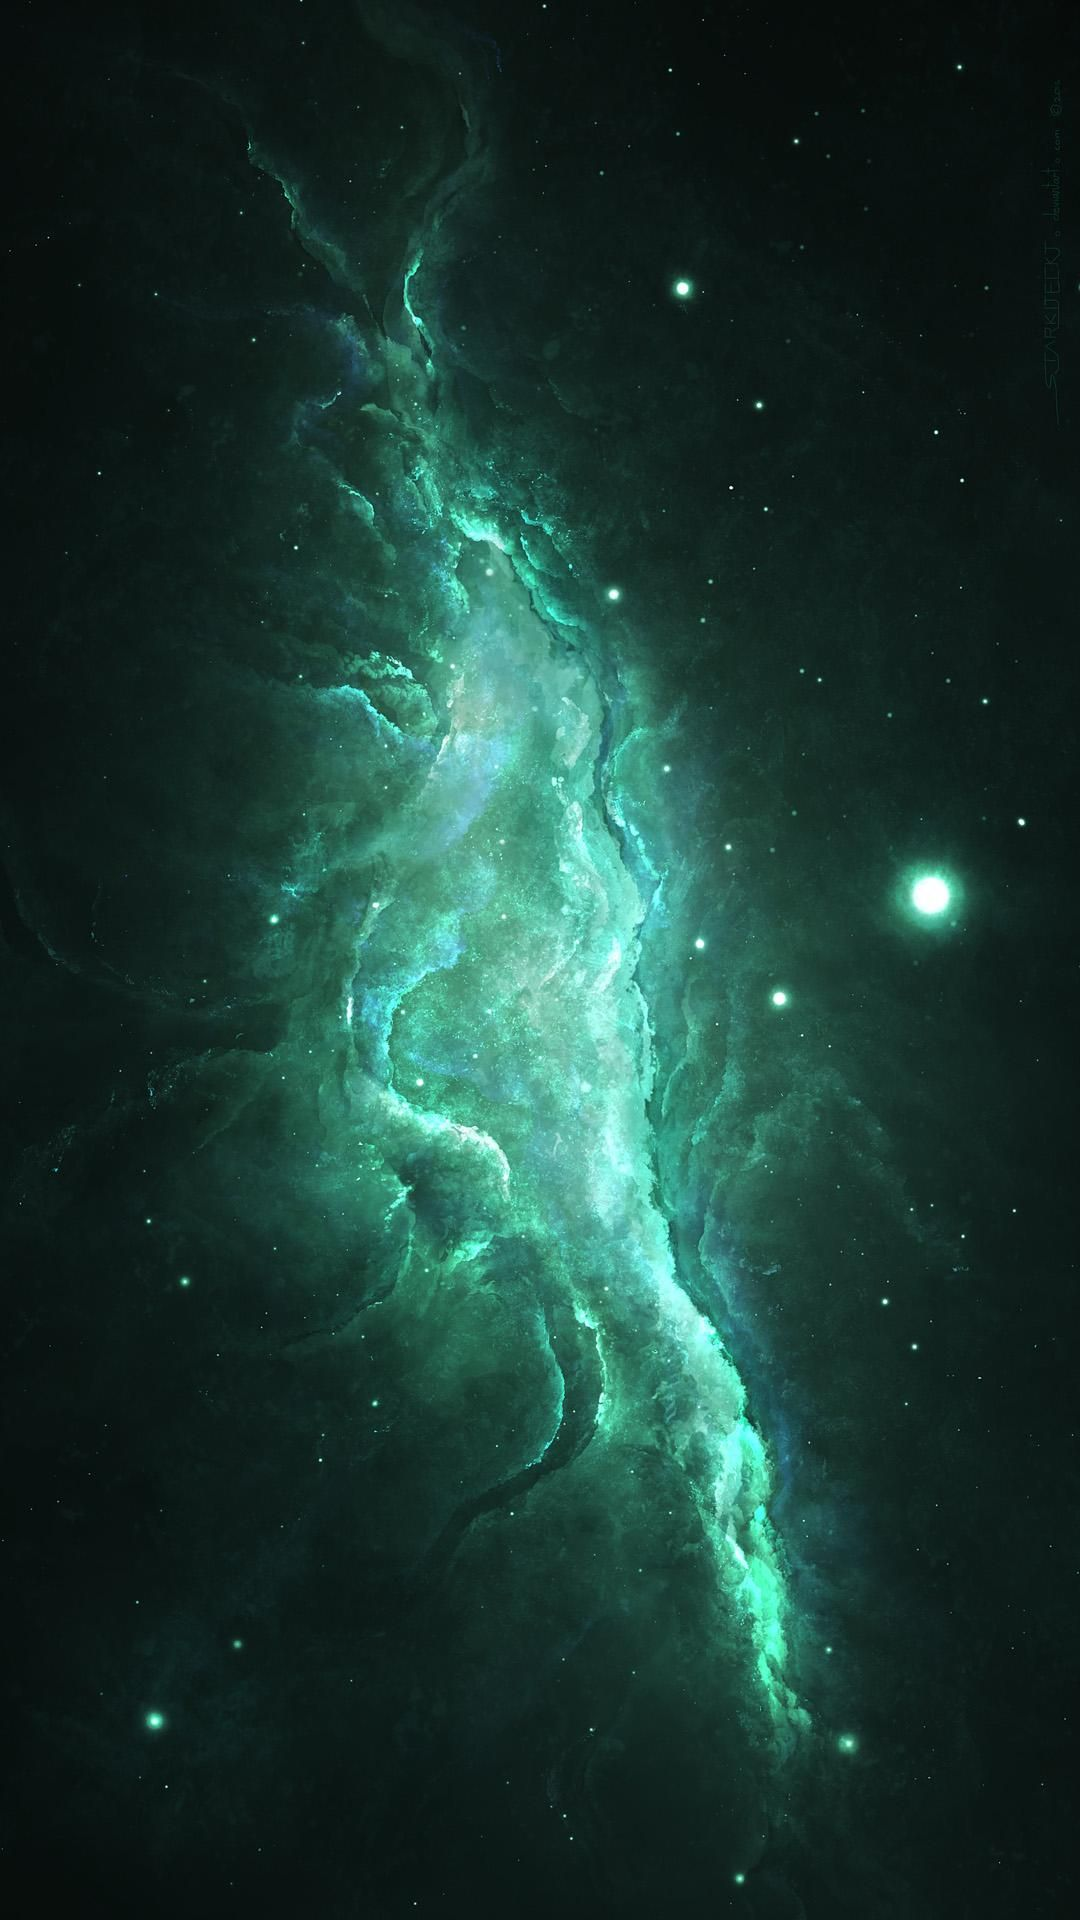 Space Void Beautiful Wallpaper Nature wallpaper Iphone 1080x1920